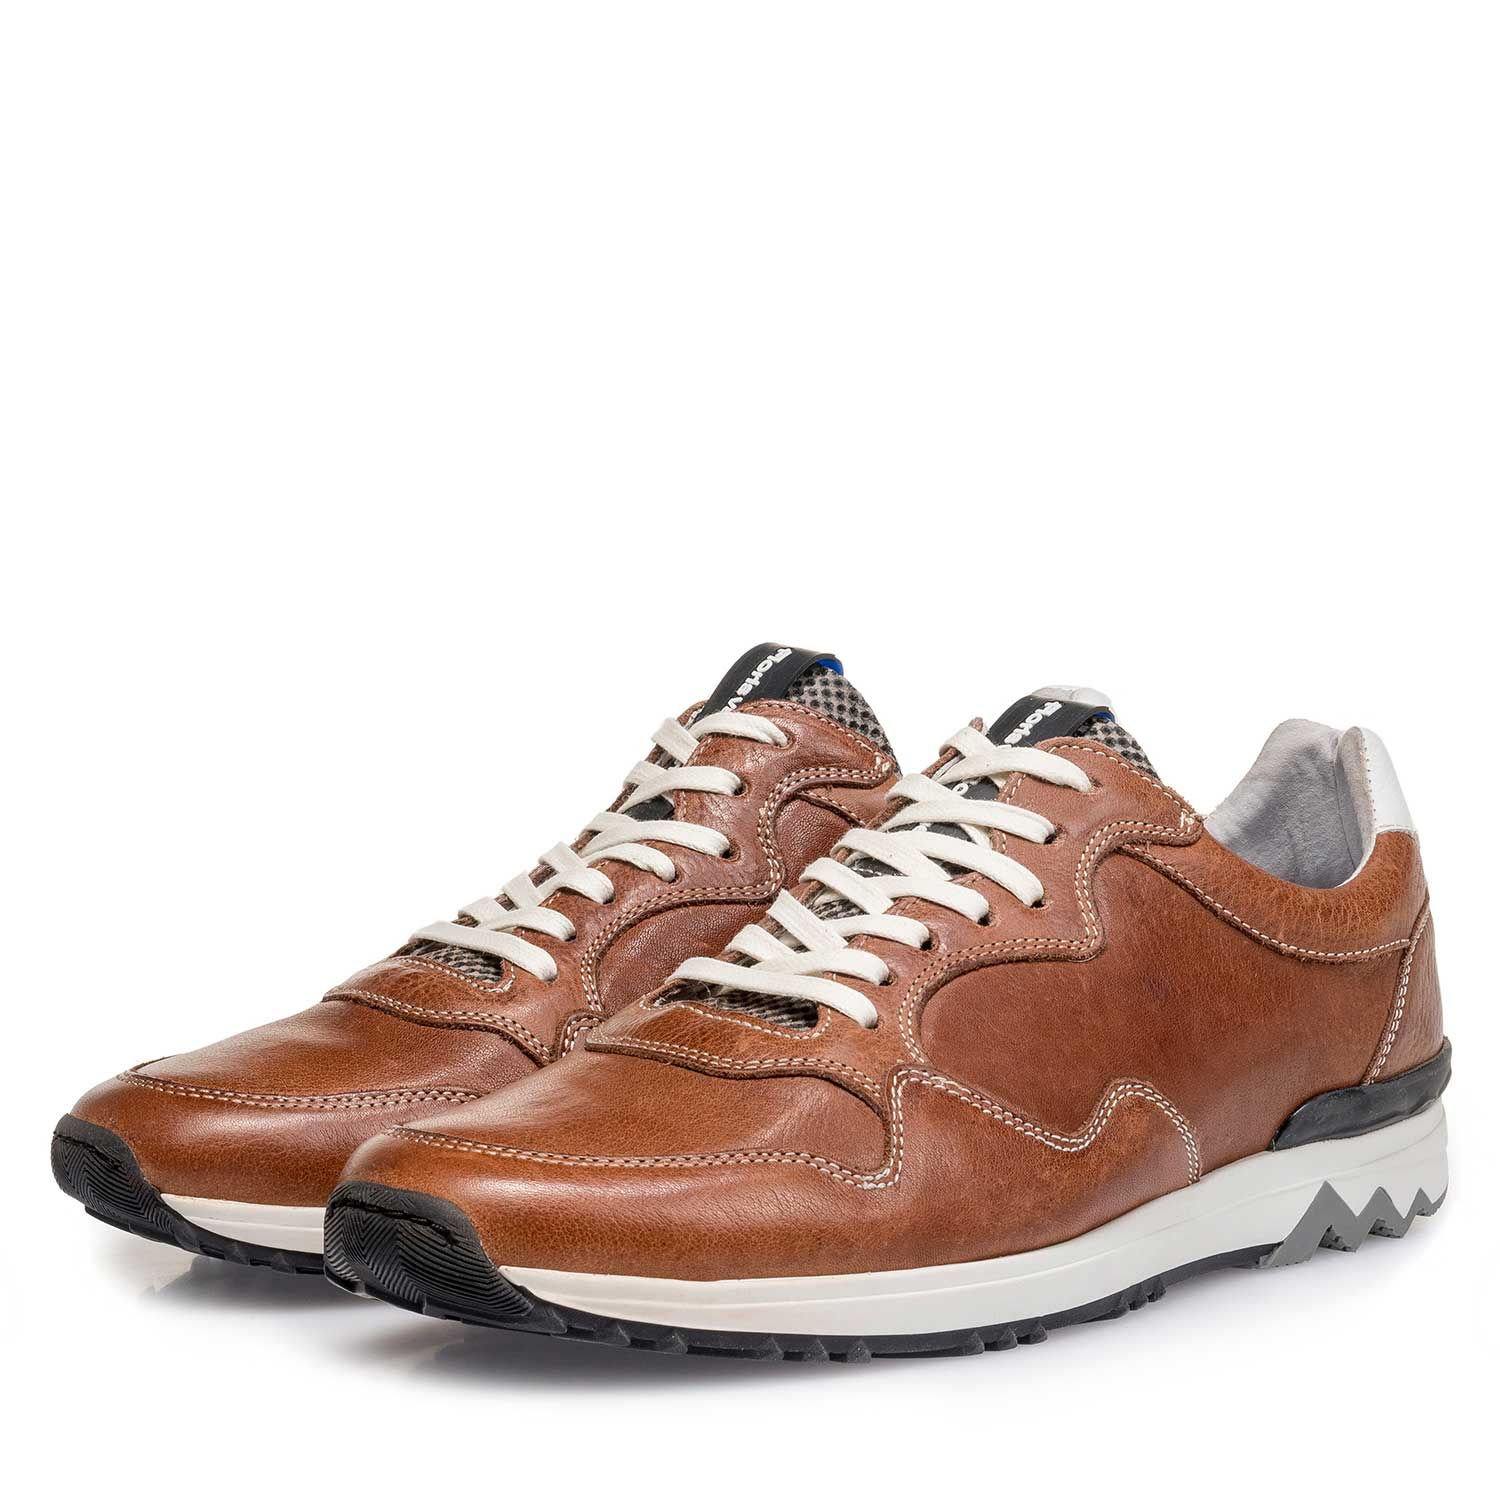 16238/08 - Cognac-coloured leather sneaker